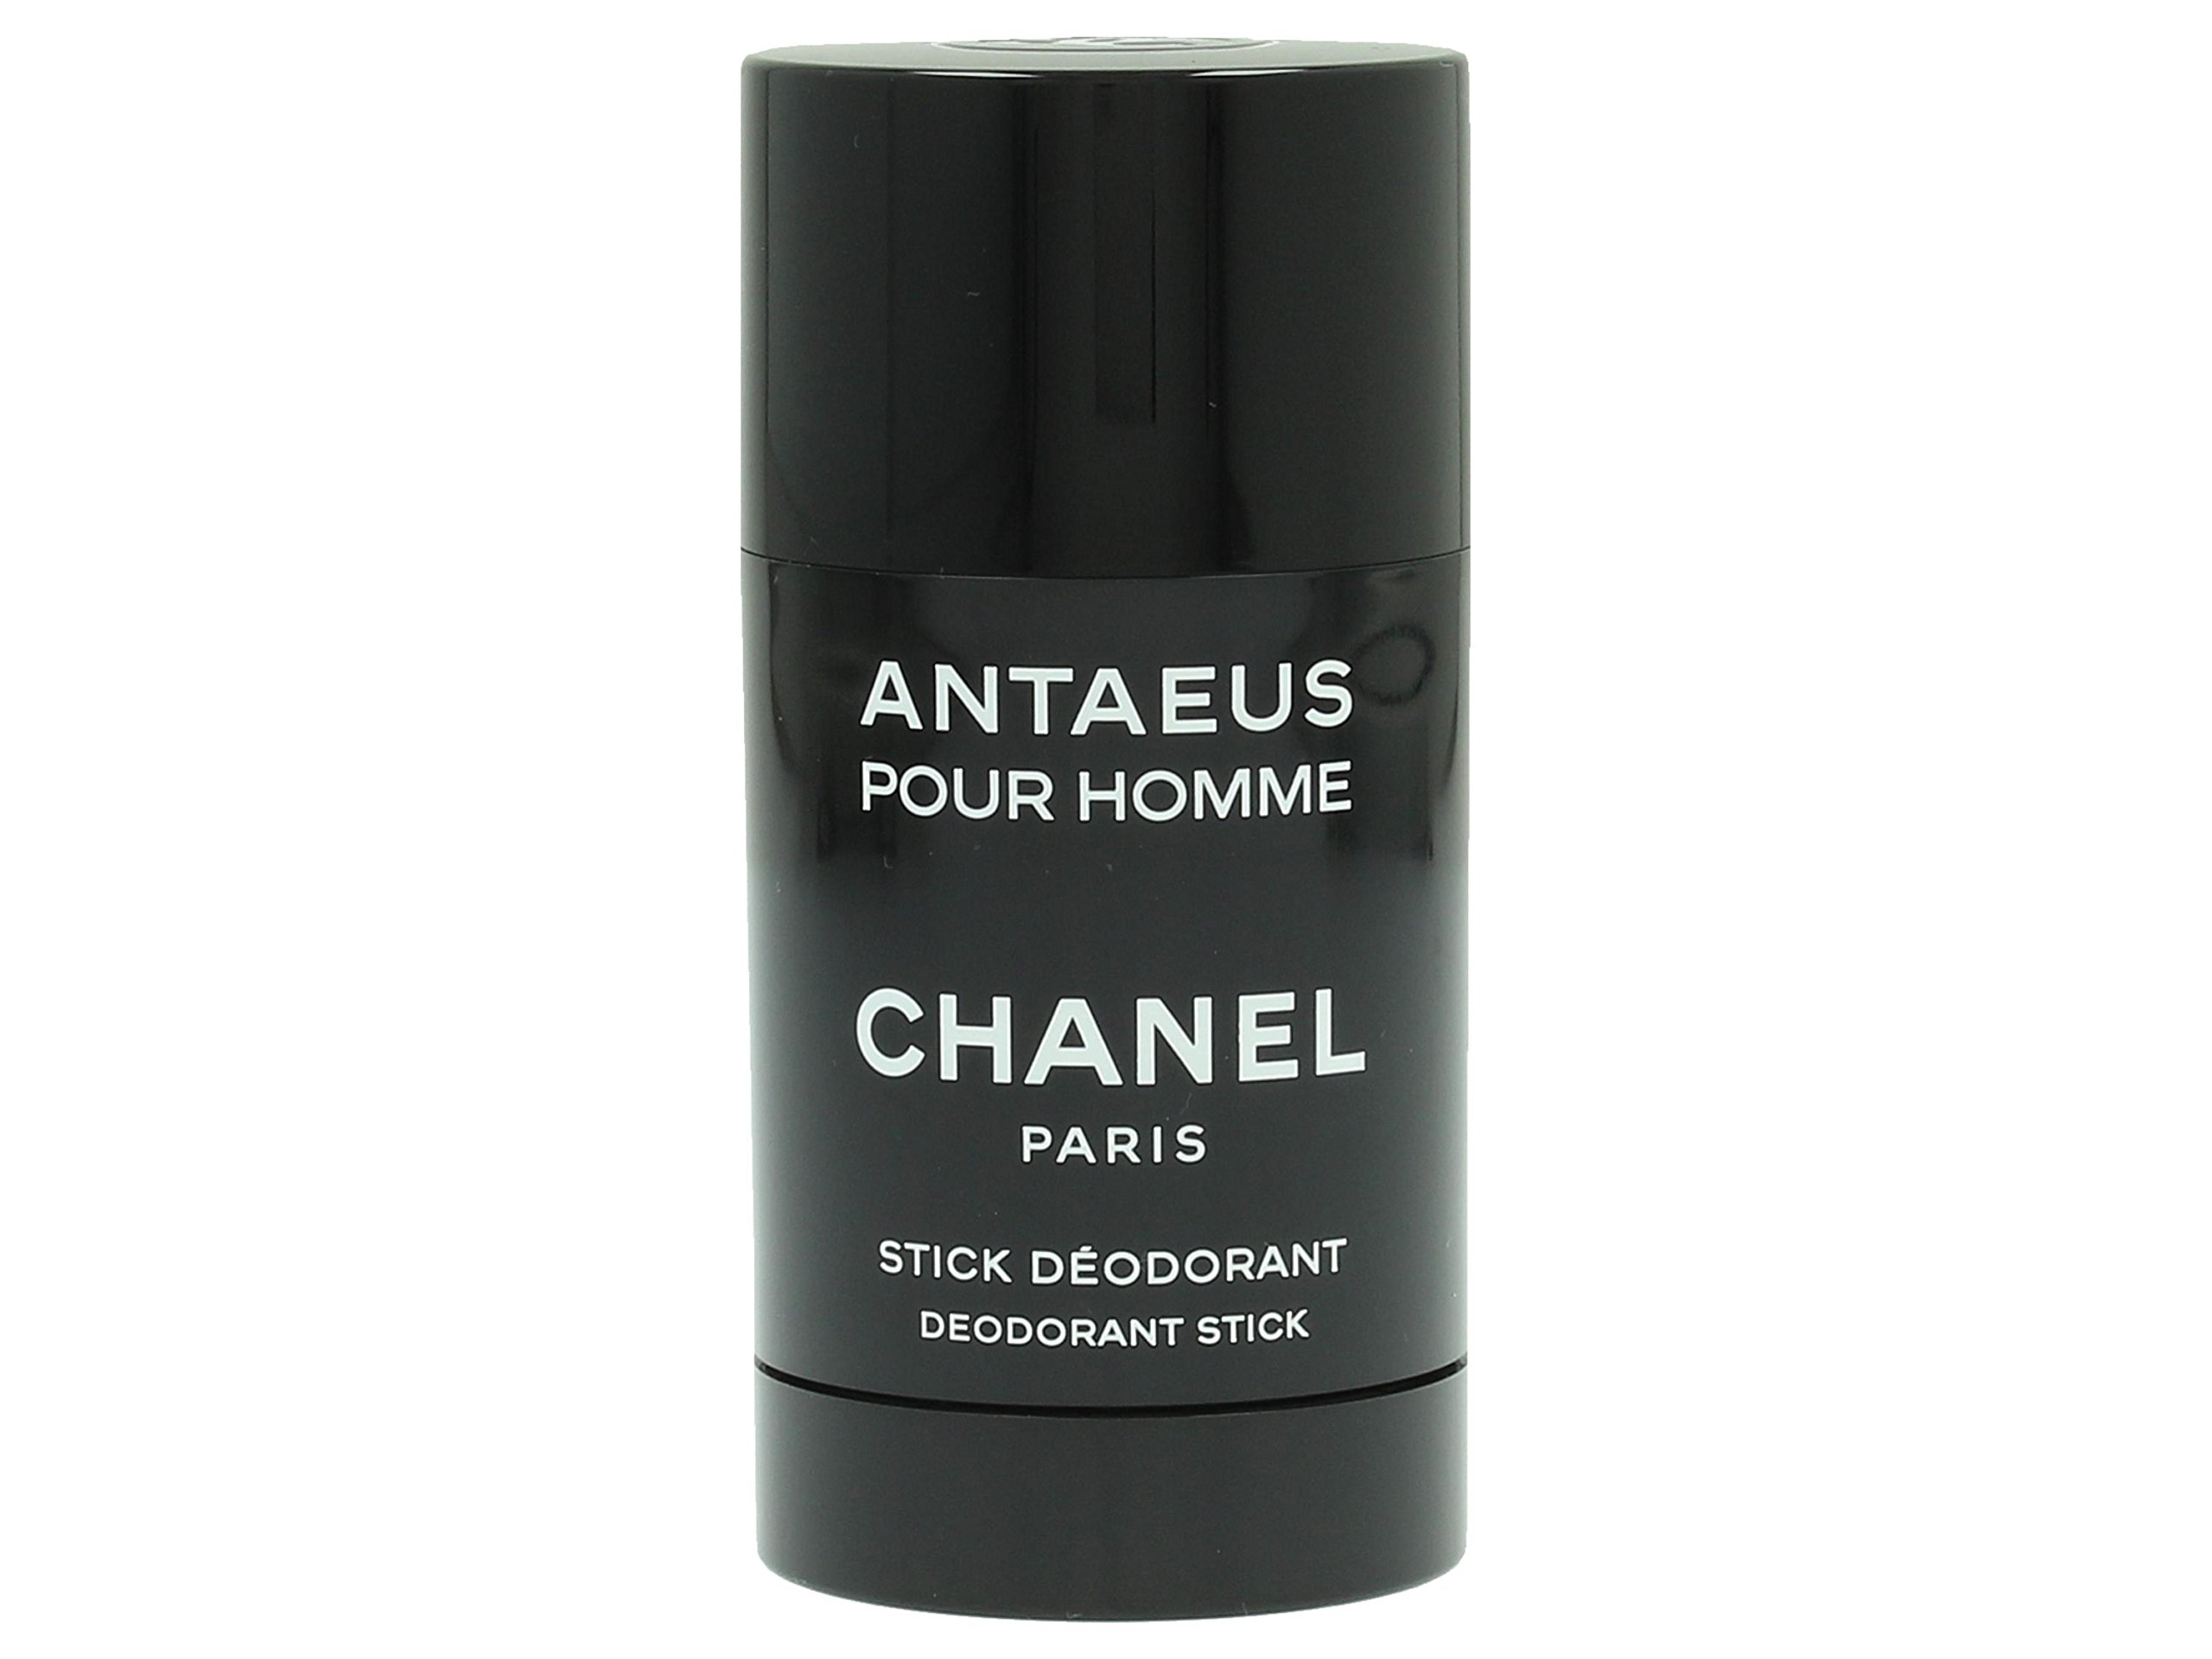 Chanel Antaeus Pour Homme Deodorant Roll-On